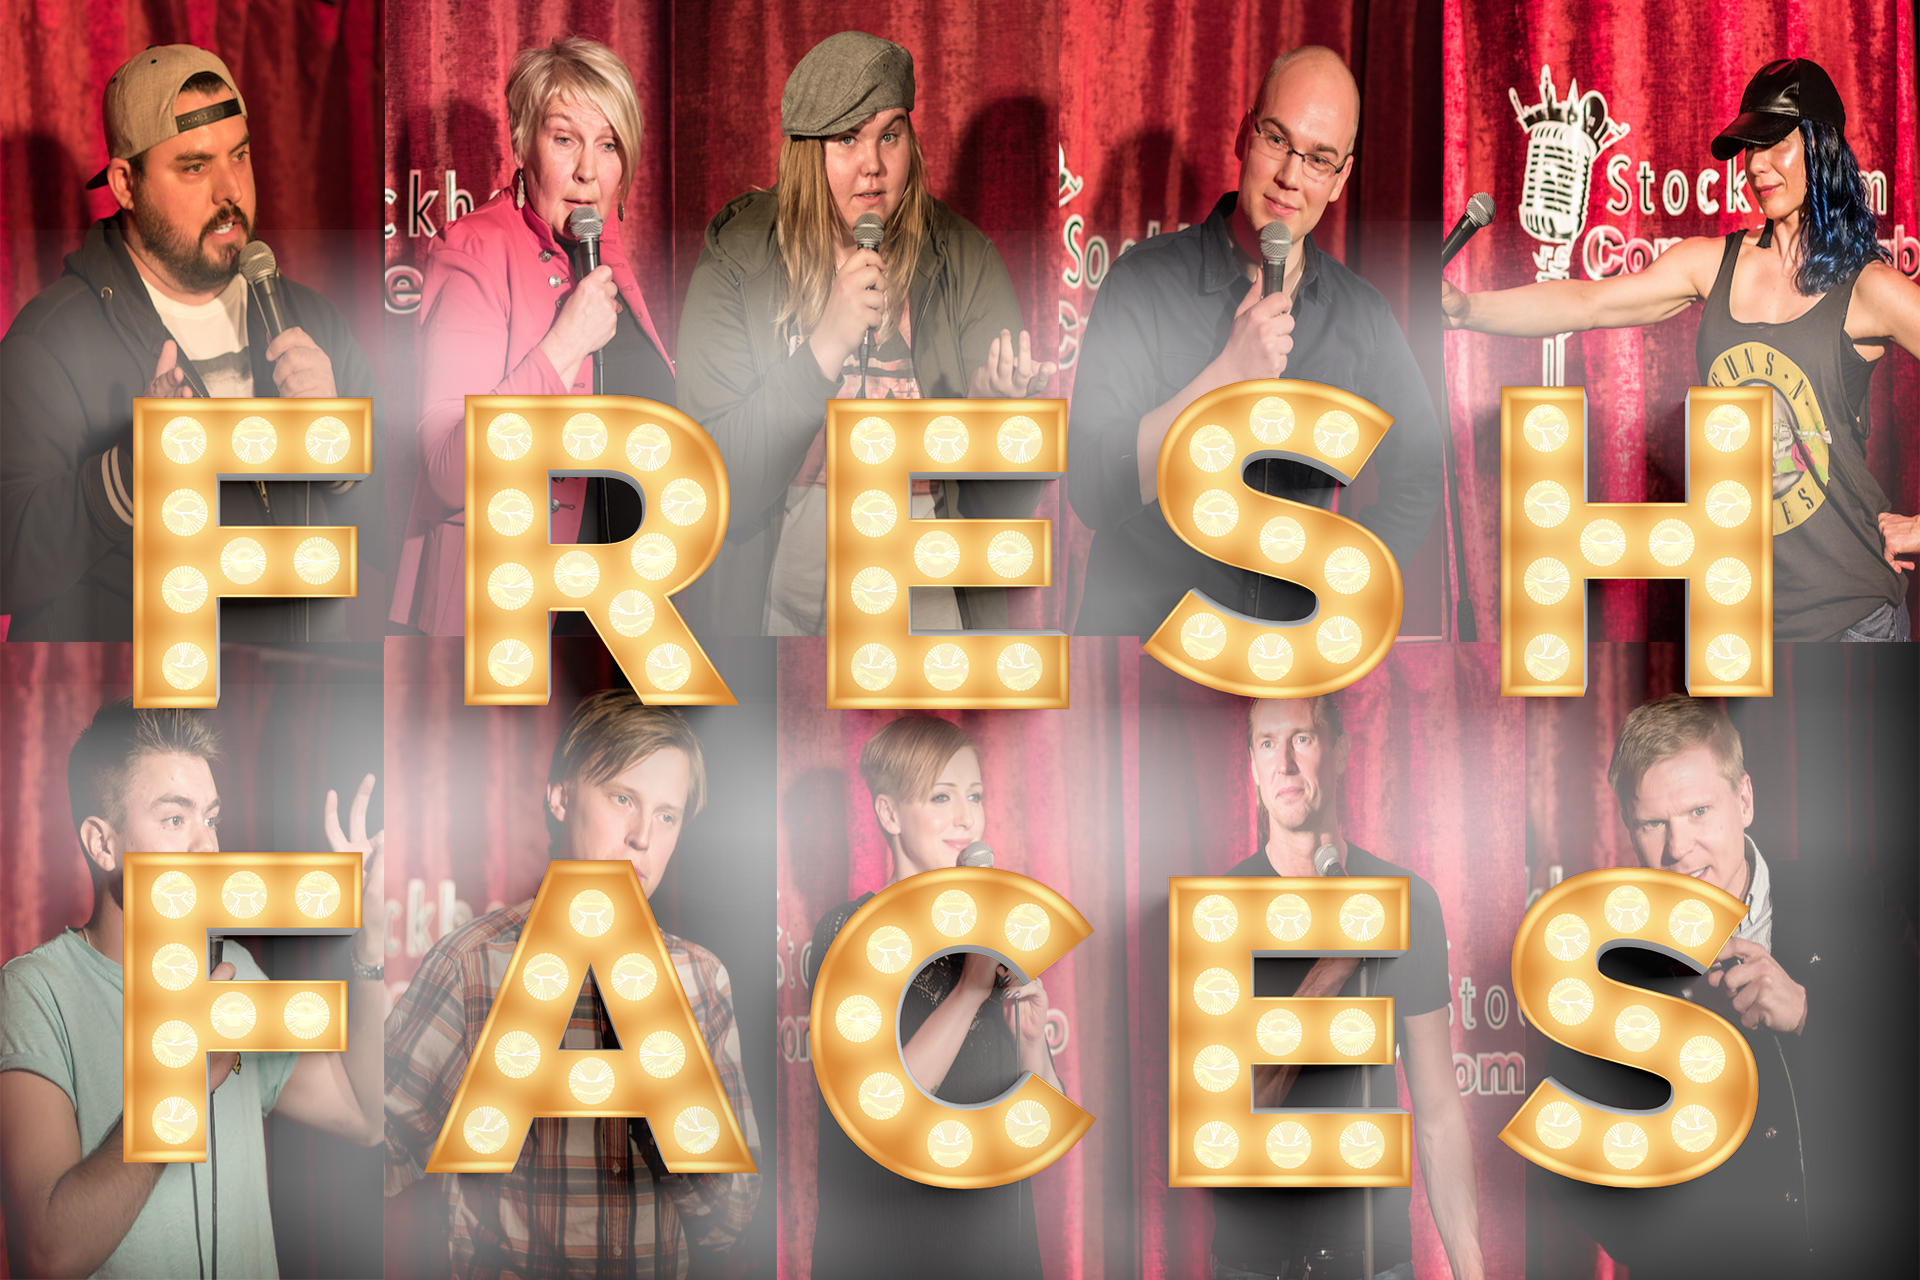 stockholm comedy club fresh faces